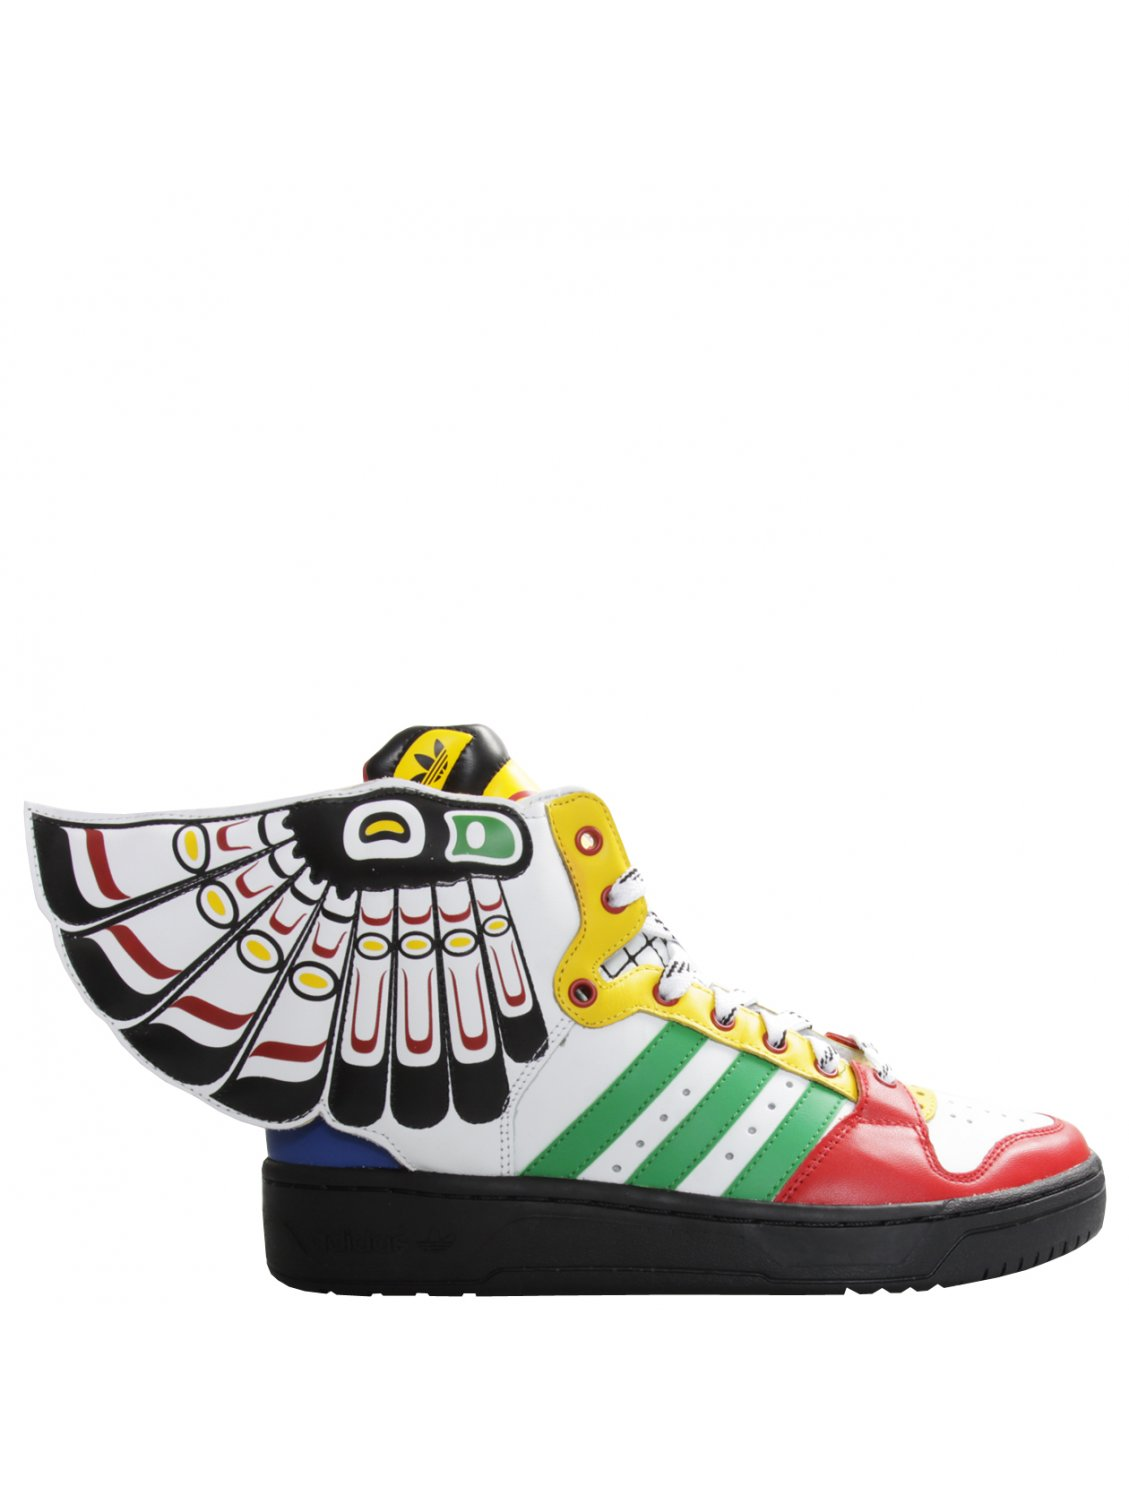 Jeremy scott for adidas Eagle Wing Totem Sneakers Multi